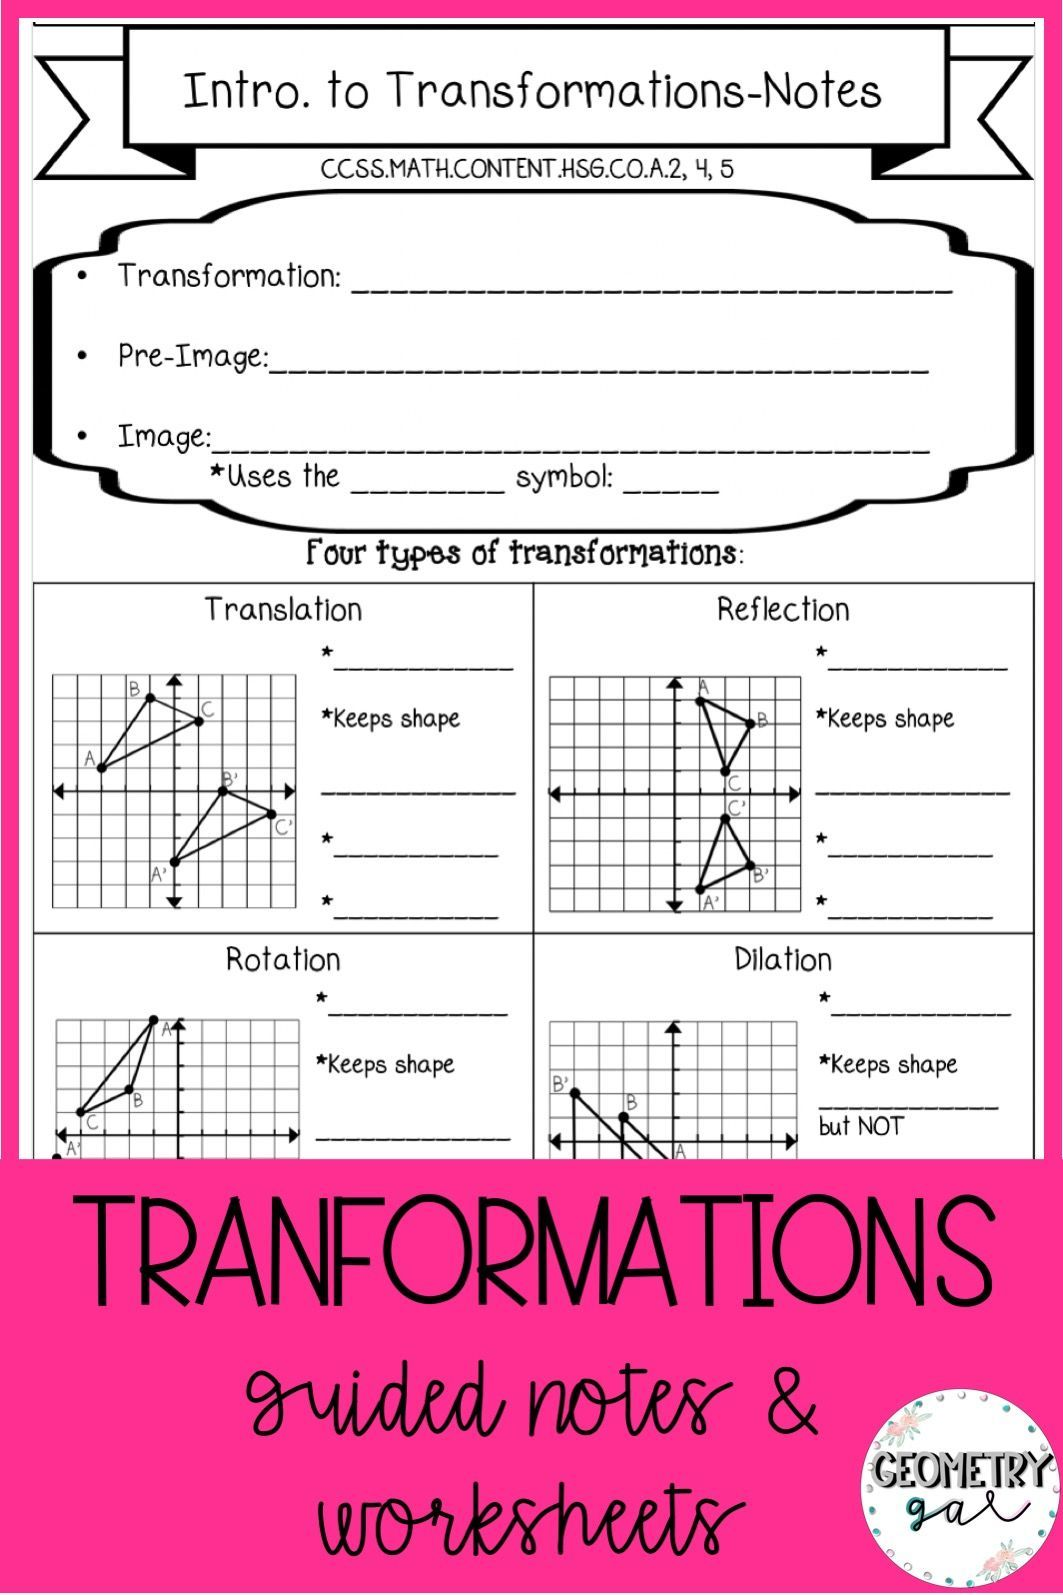 Transformations Guided Notes and Worksheets | All Things